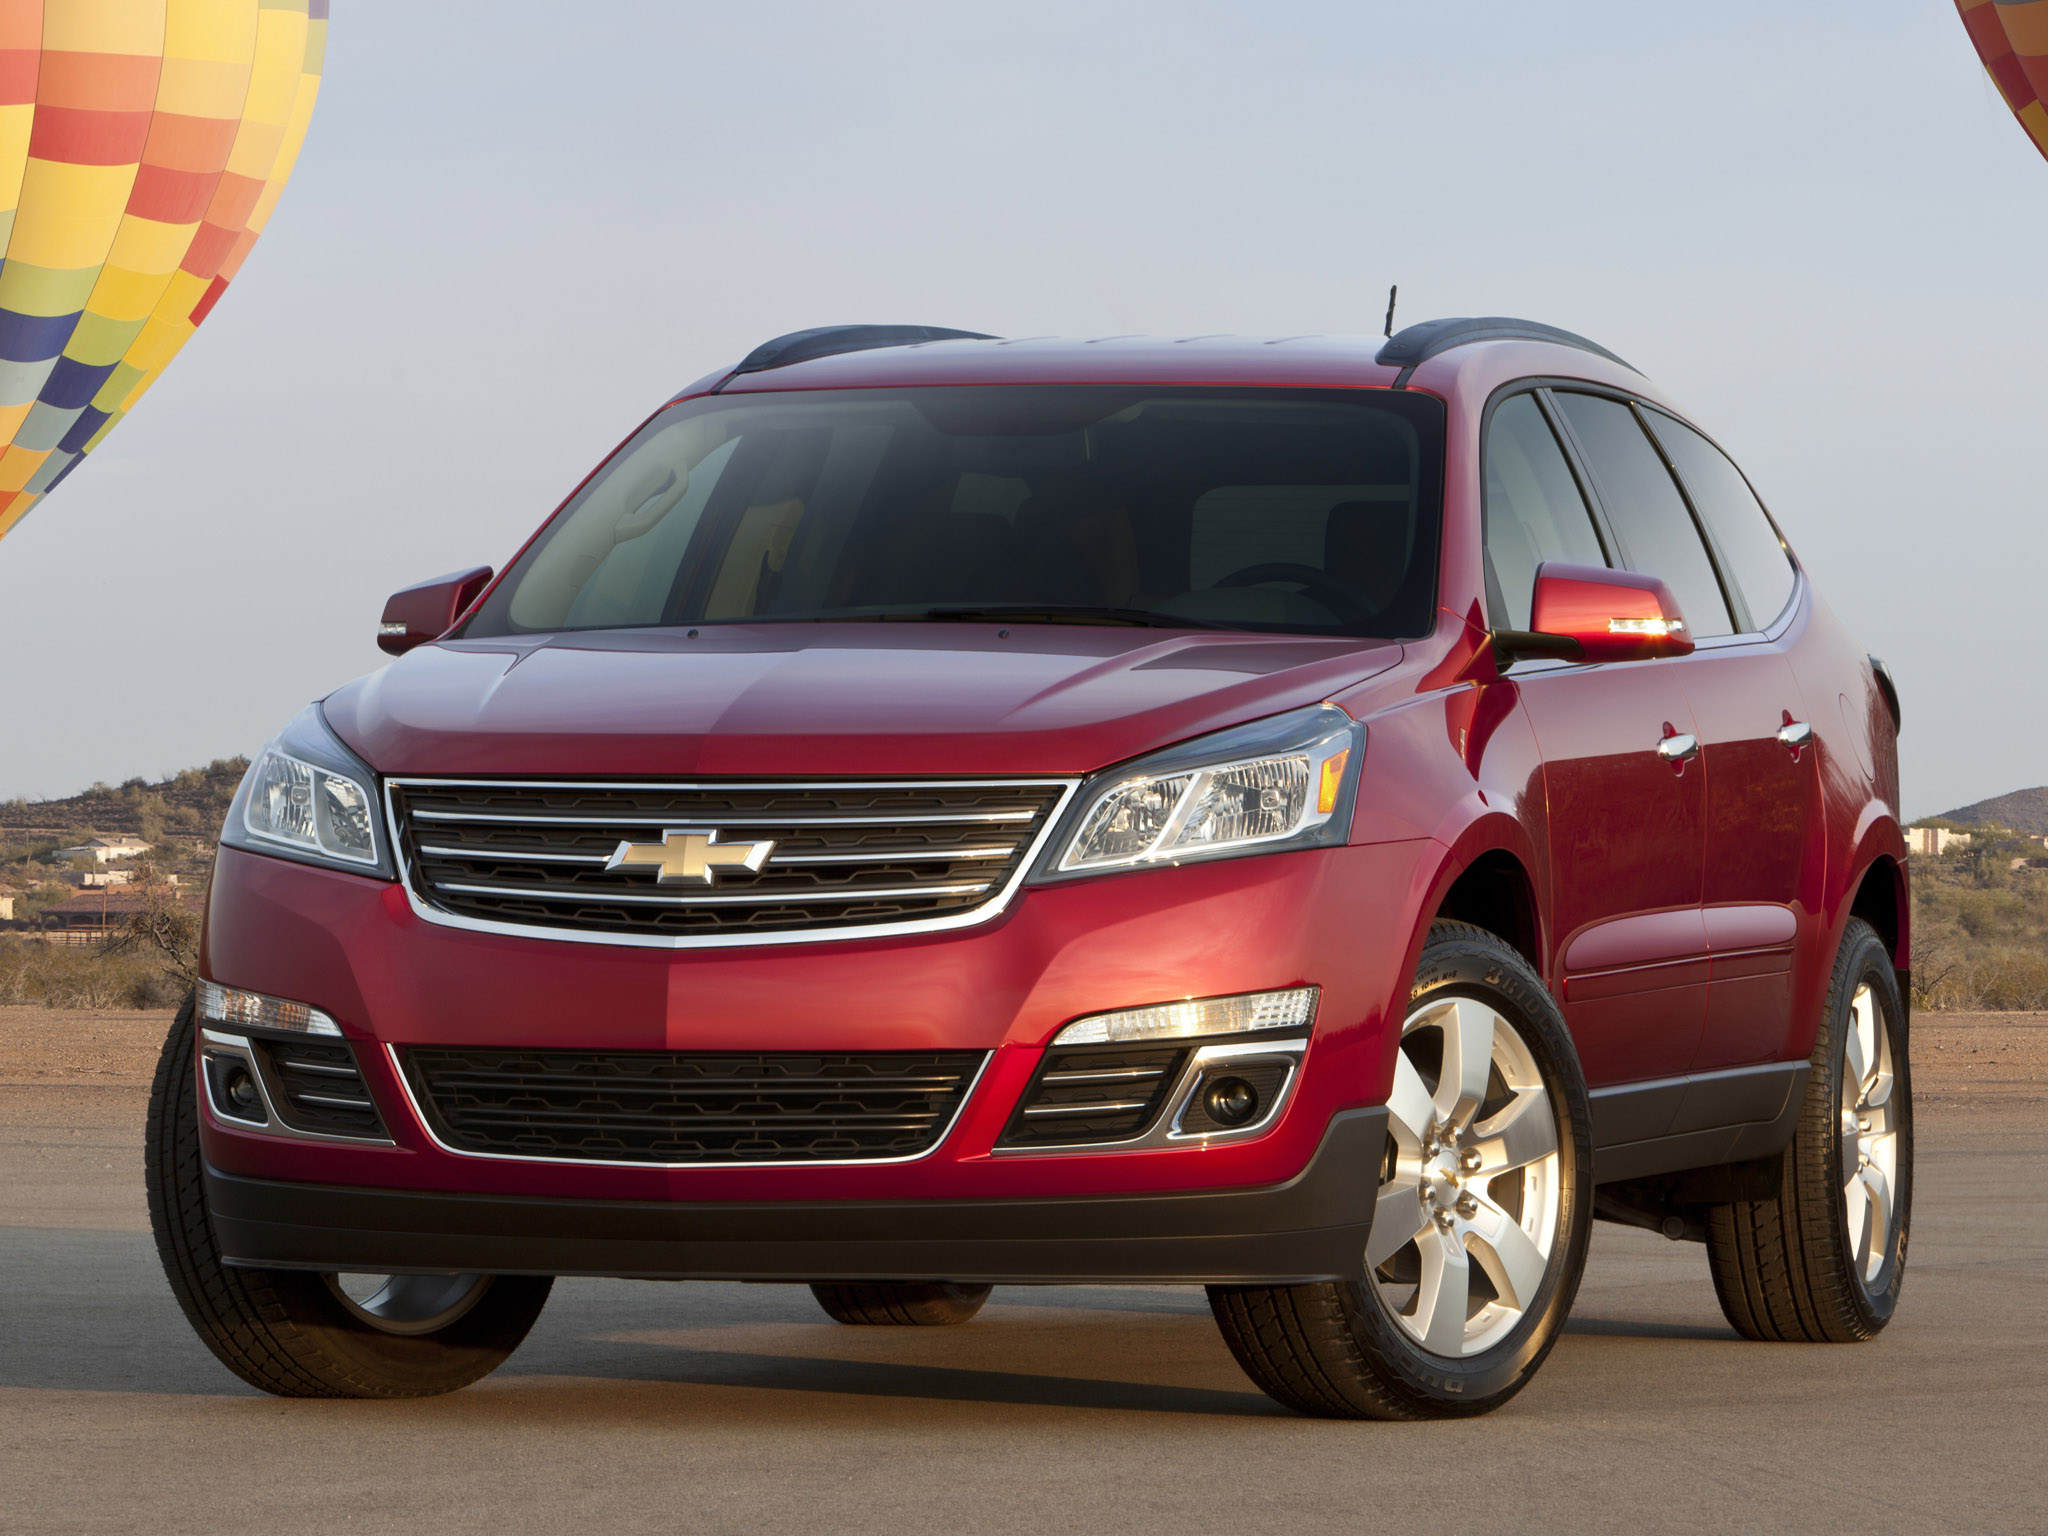 chevrolet traverse crossover 2012 chevrolet traverse crossover 2012 photo 08 car in pictures. Black Bedroom Furniture Sets. Home Design Ideas